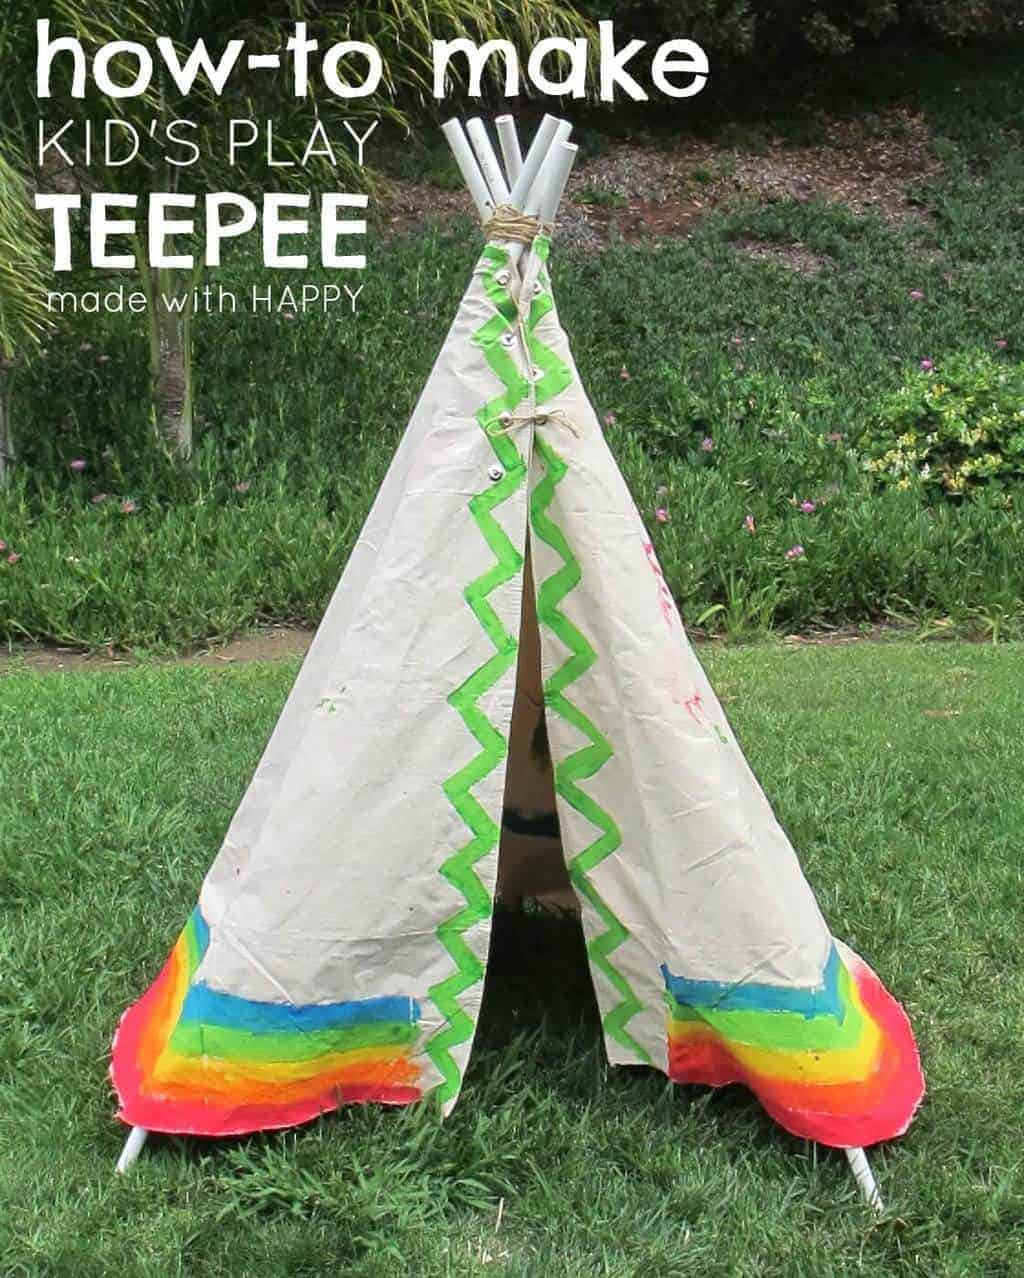 Best 25 Teepees Ideas On Pinterest: Kids Play Teepee